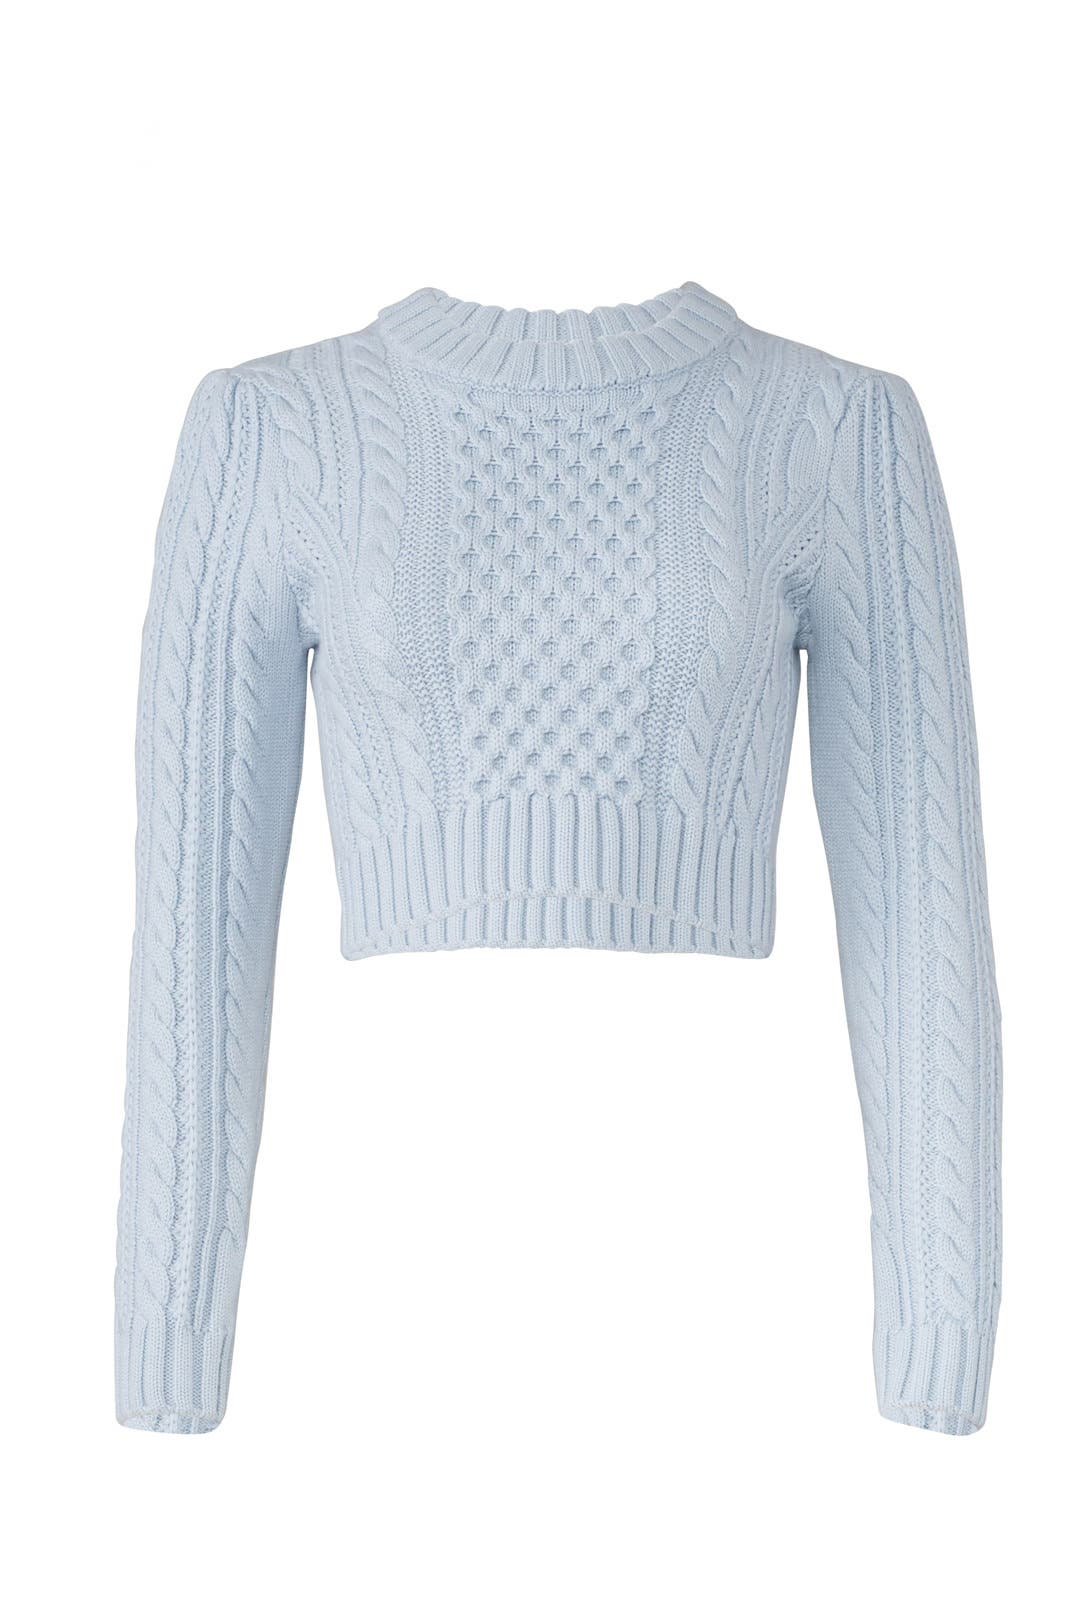 Cropped Cable Sweater by Milly for $60   Rent the Runway